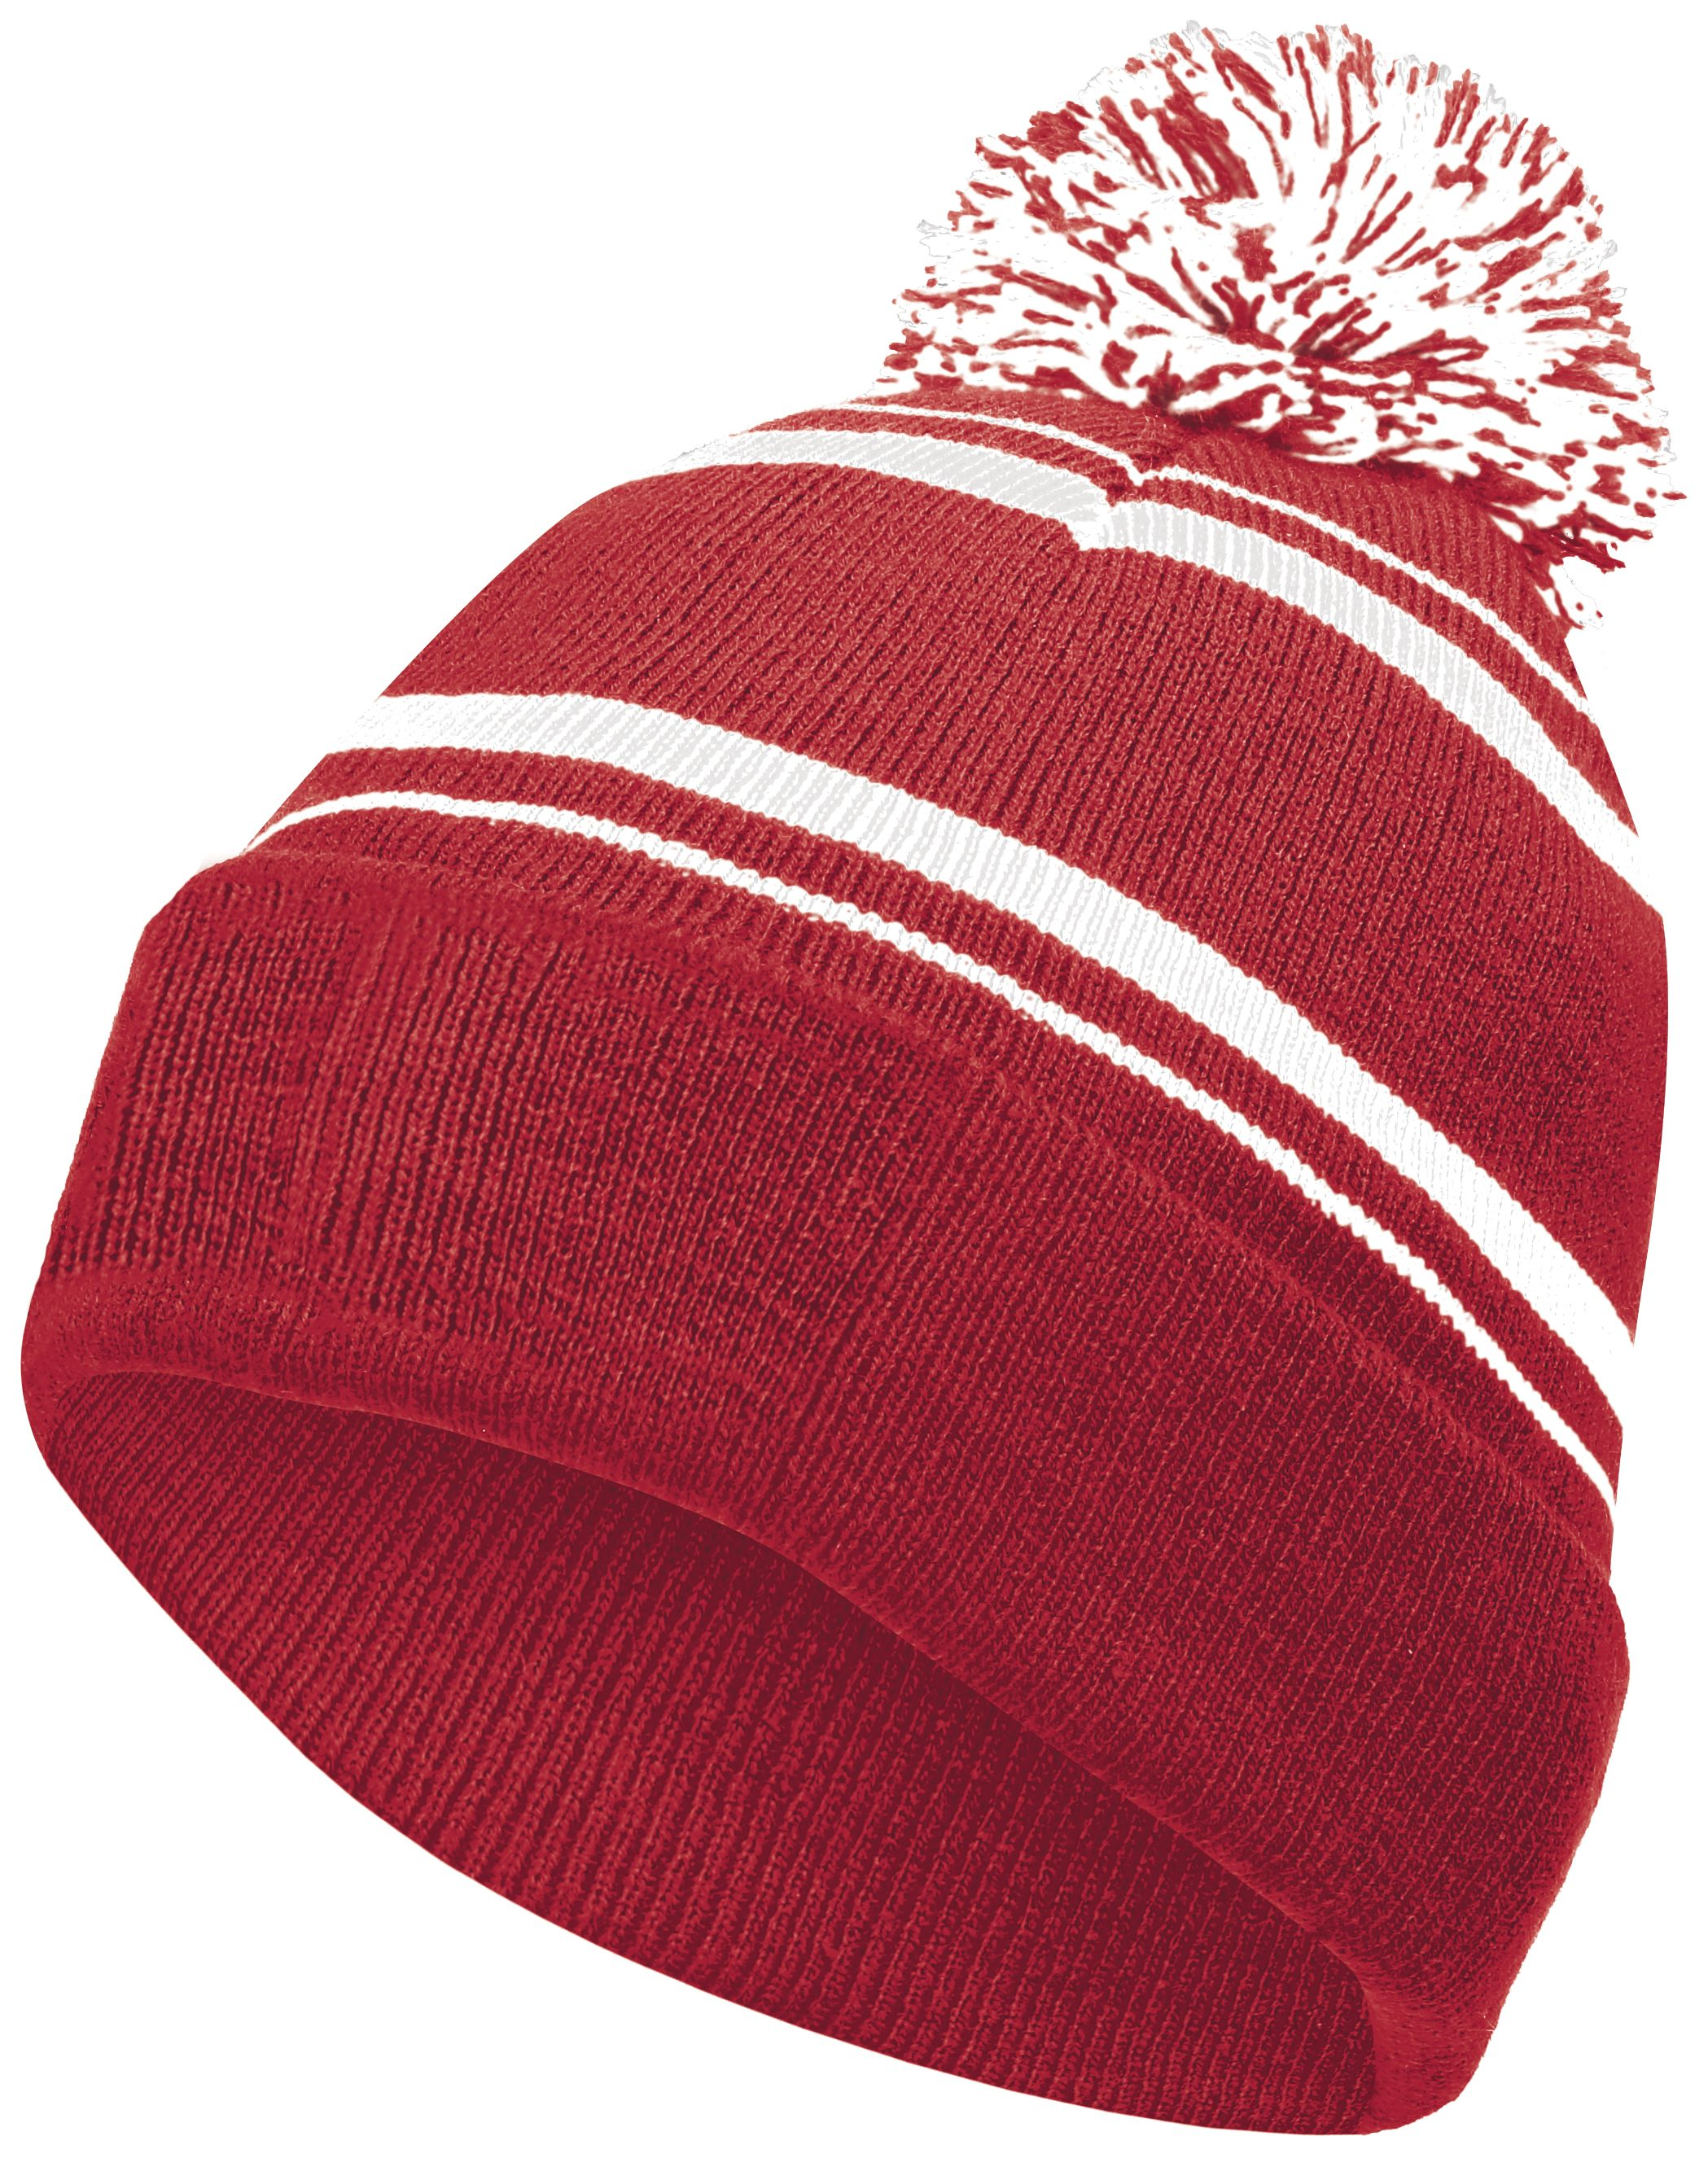 Homecoming Beanie - SCARLET/WHITE